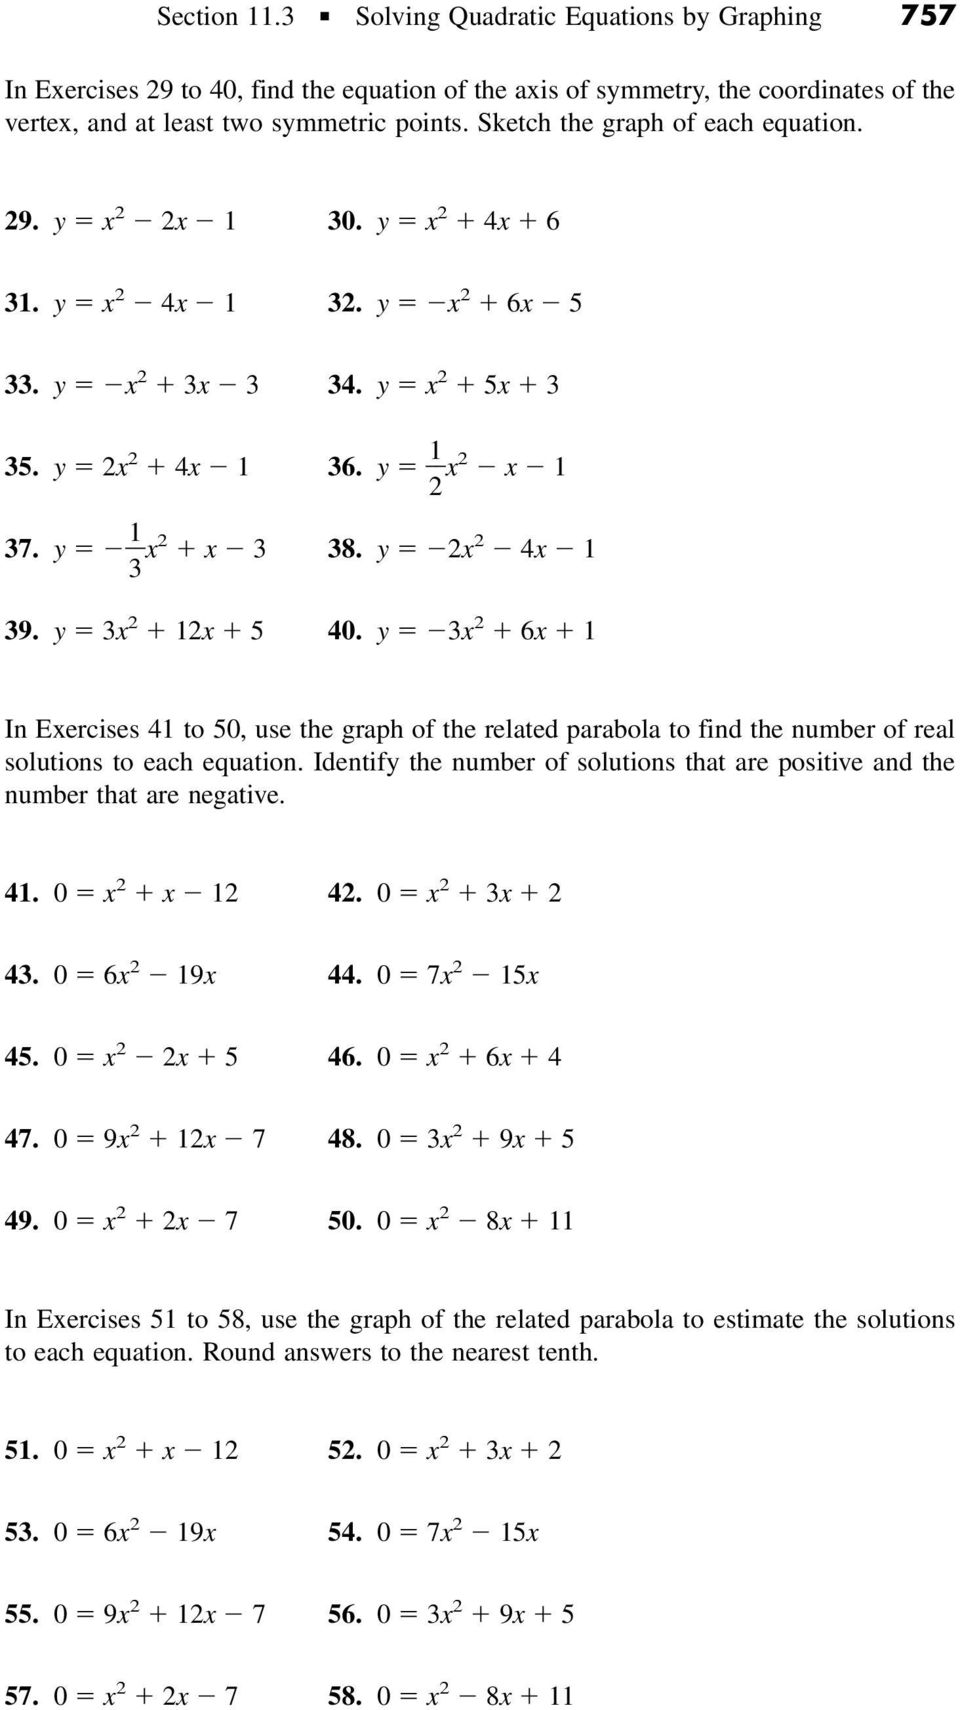 3 2 6 1 In Eercises 41 to 50, use the graph of the related parabola to find the number of real solutions to each equation.